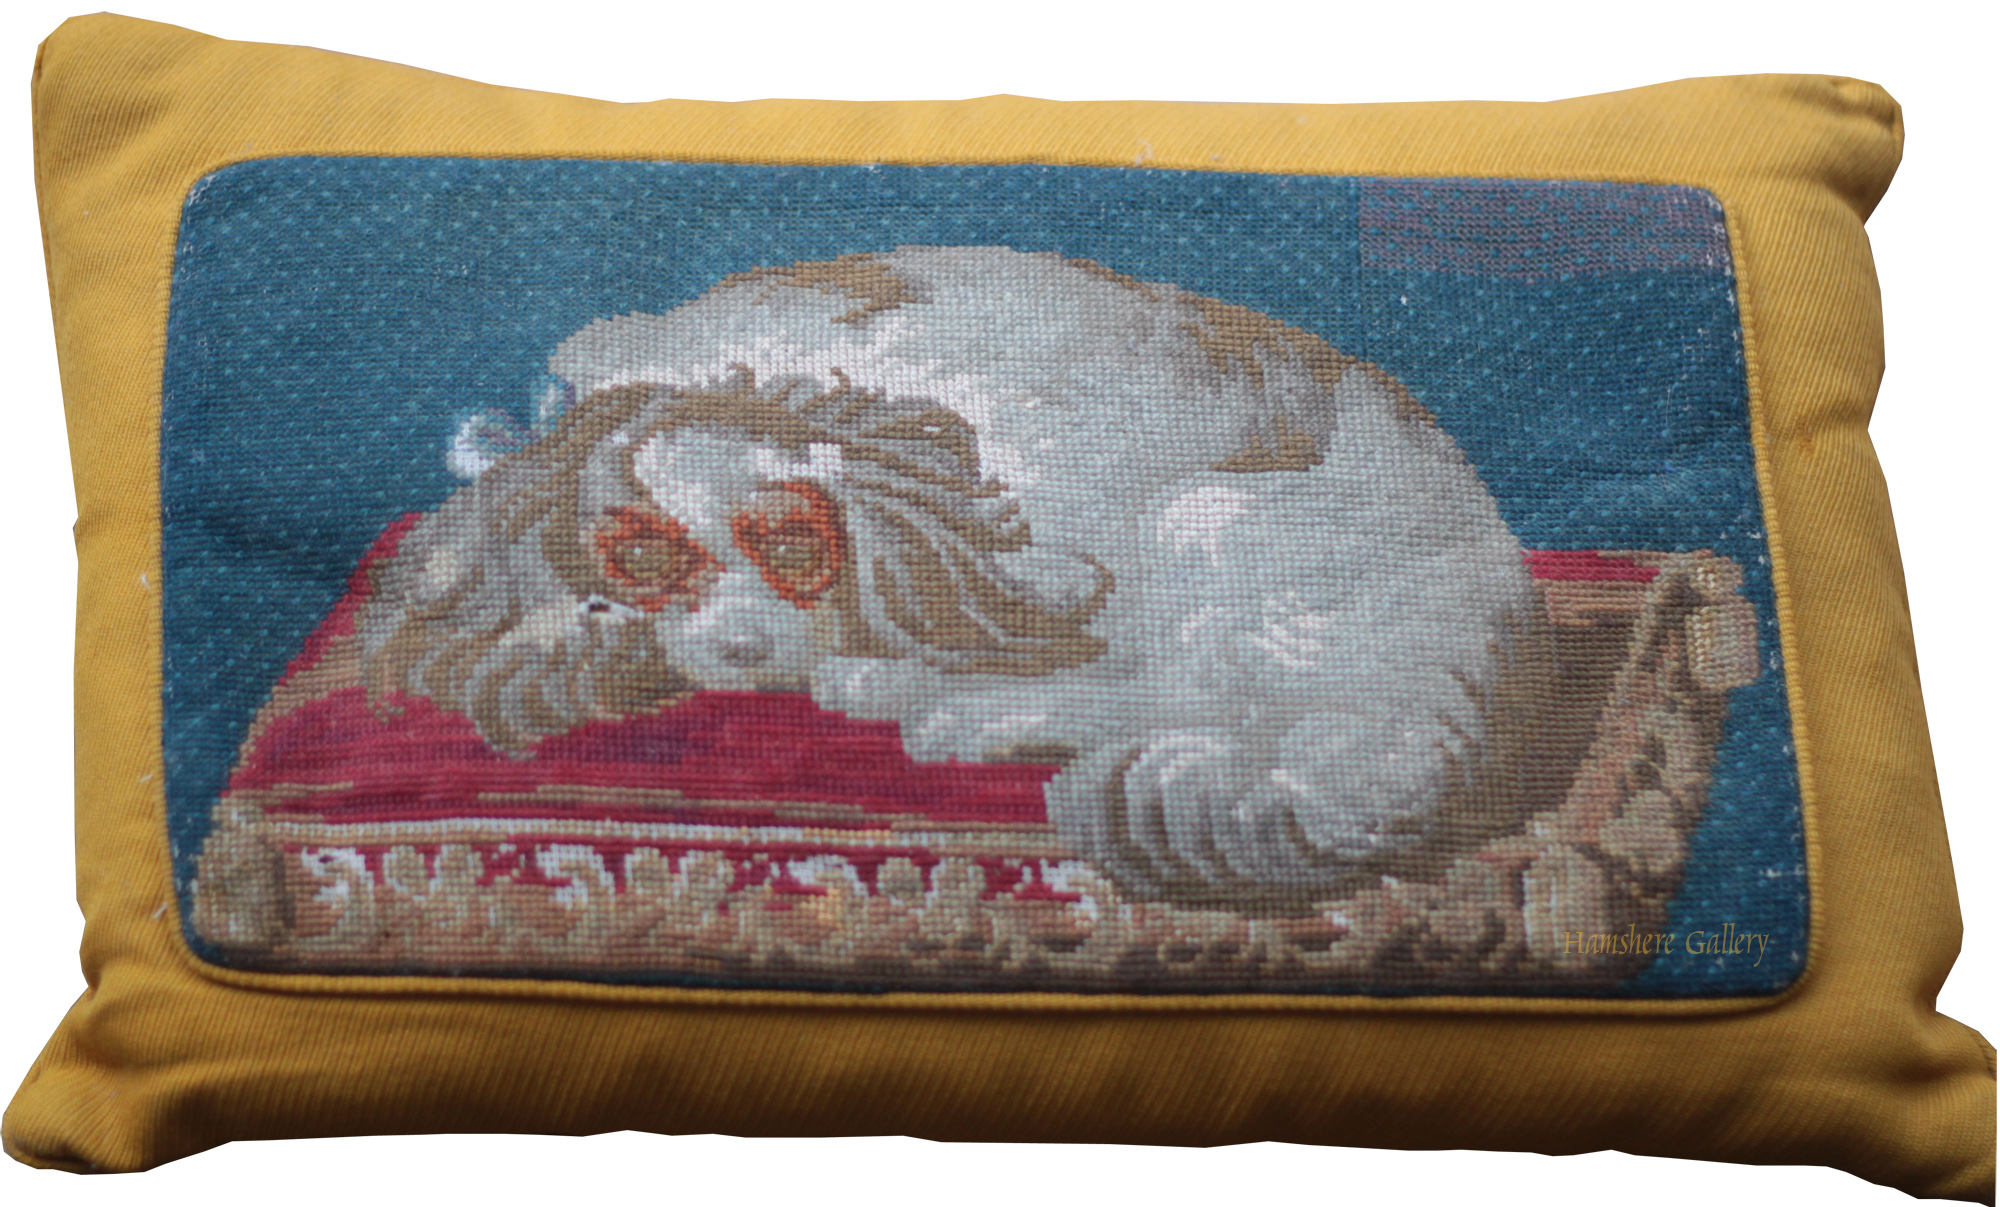 Click to see full size: 19th King Charles Cavalier Spaniel and puppy needlepoint / needlework / textile   - 19th King Charles Cavalier Spaniel and puppy needlepoint / needlework / textile